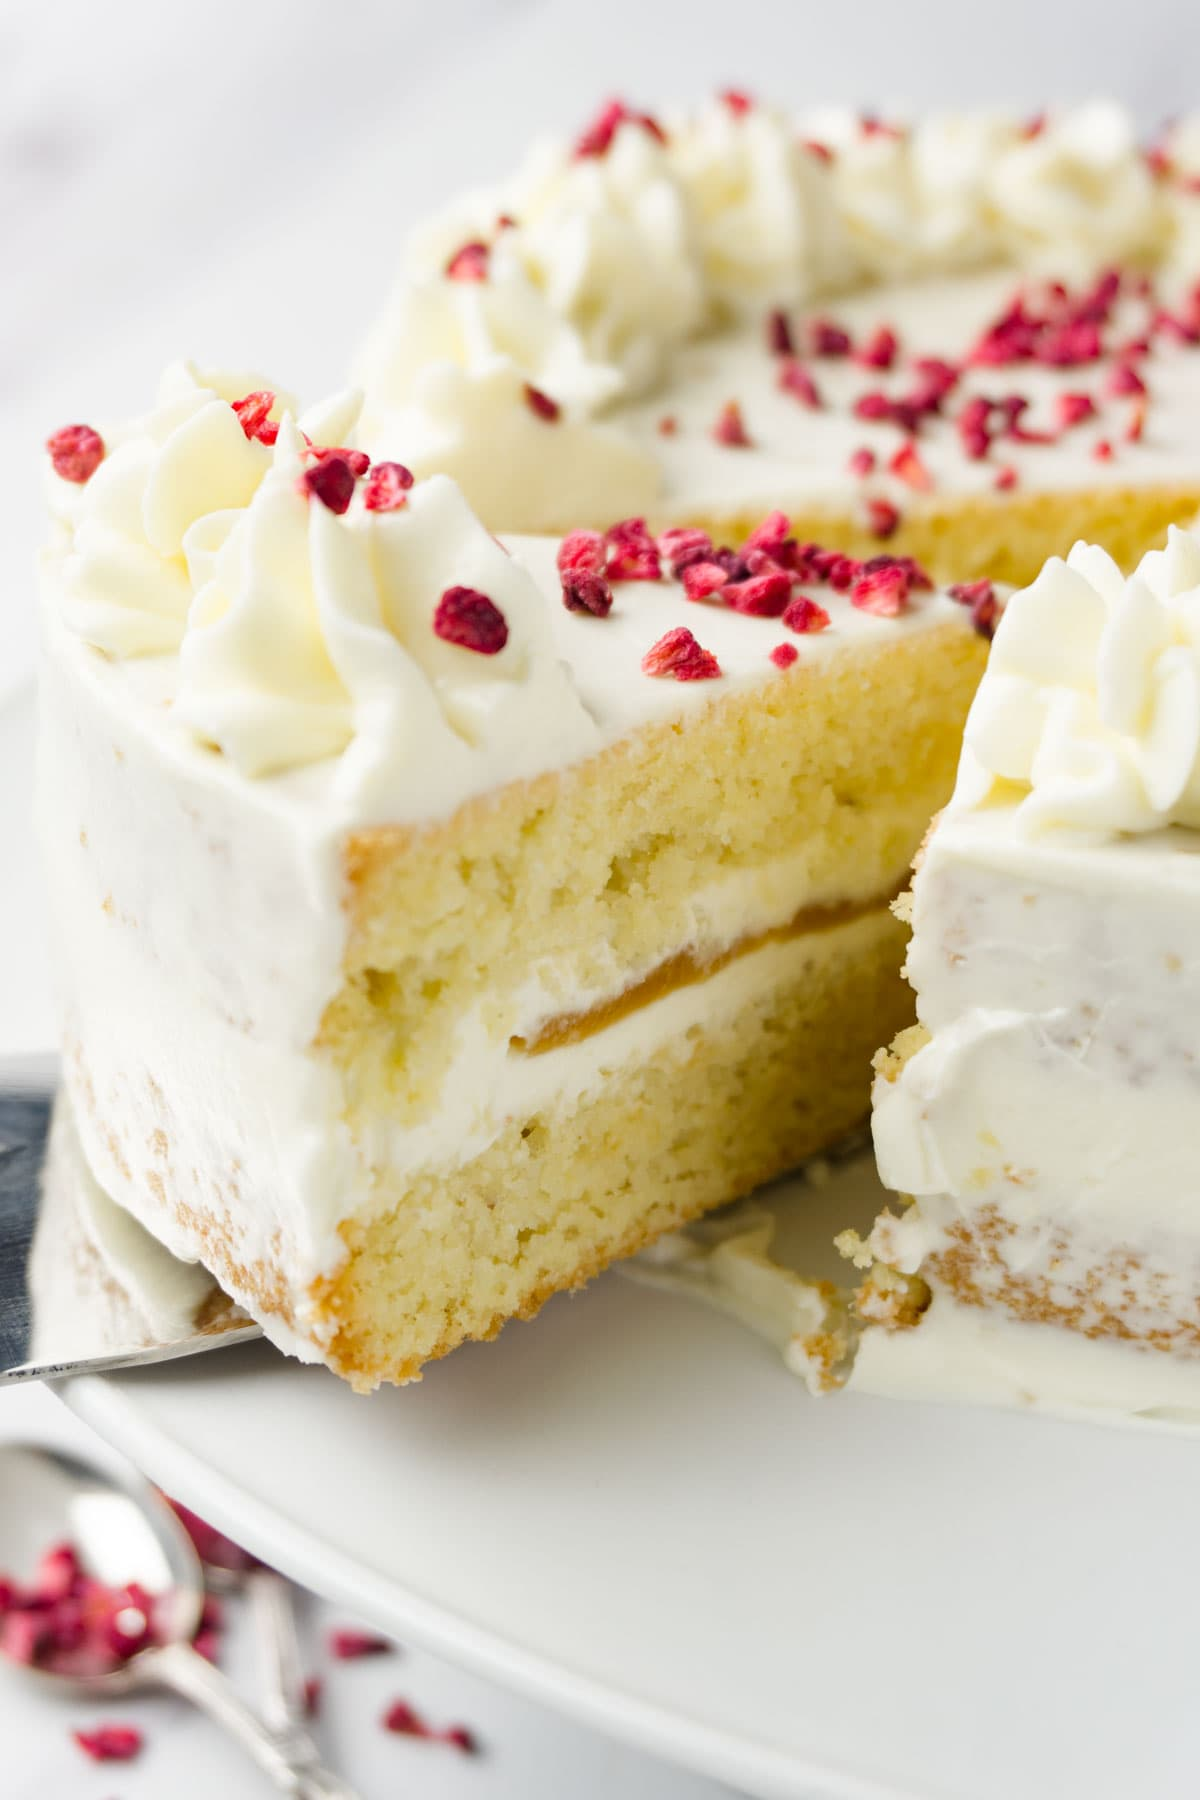 An assembled vanilla cake with caramel filling and cream cheese frosting topped with freeze-dried raspberries, one piece cut and coming out.